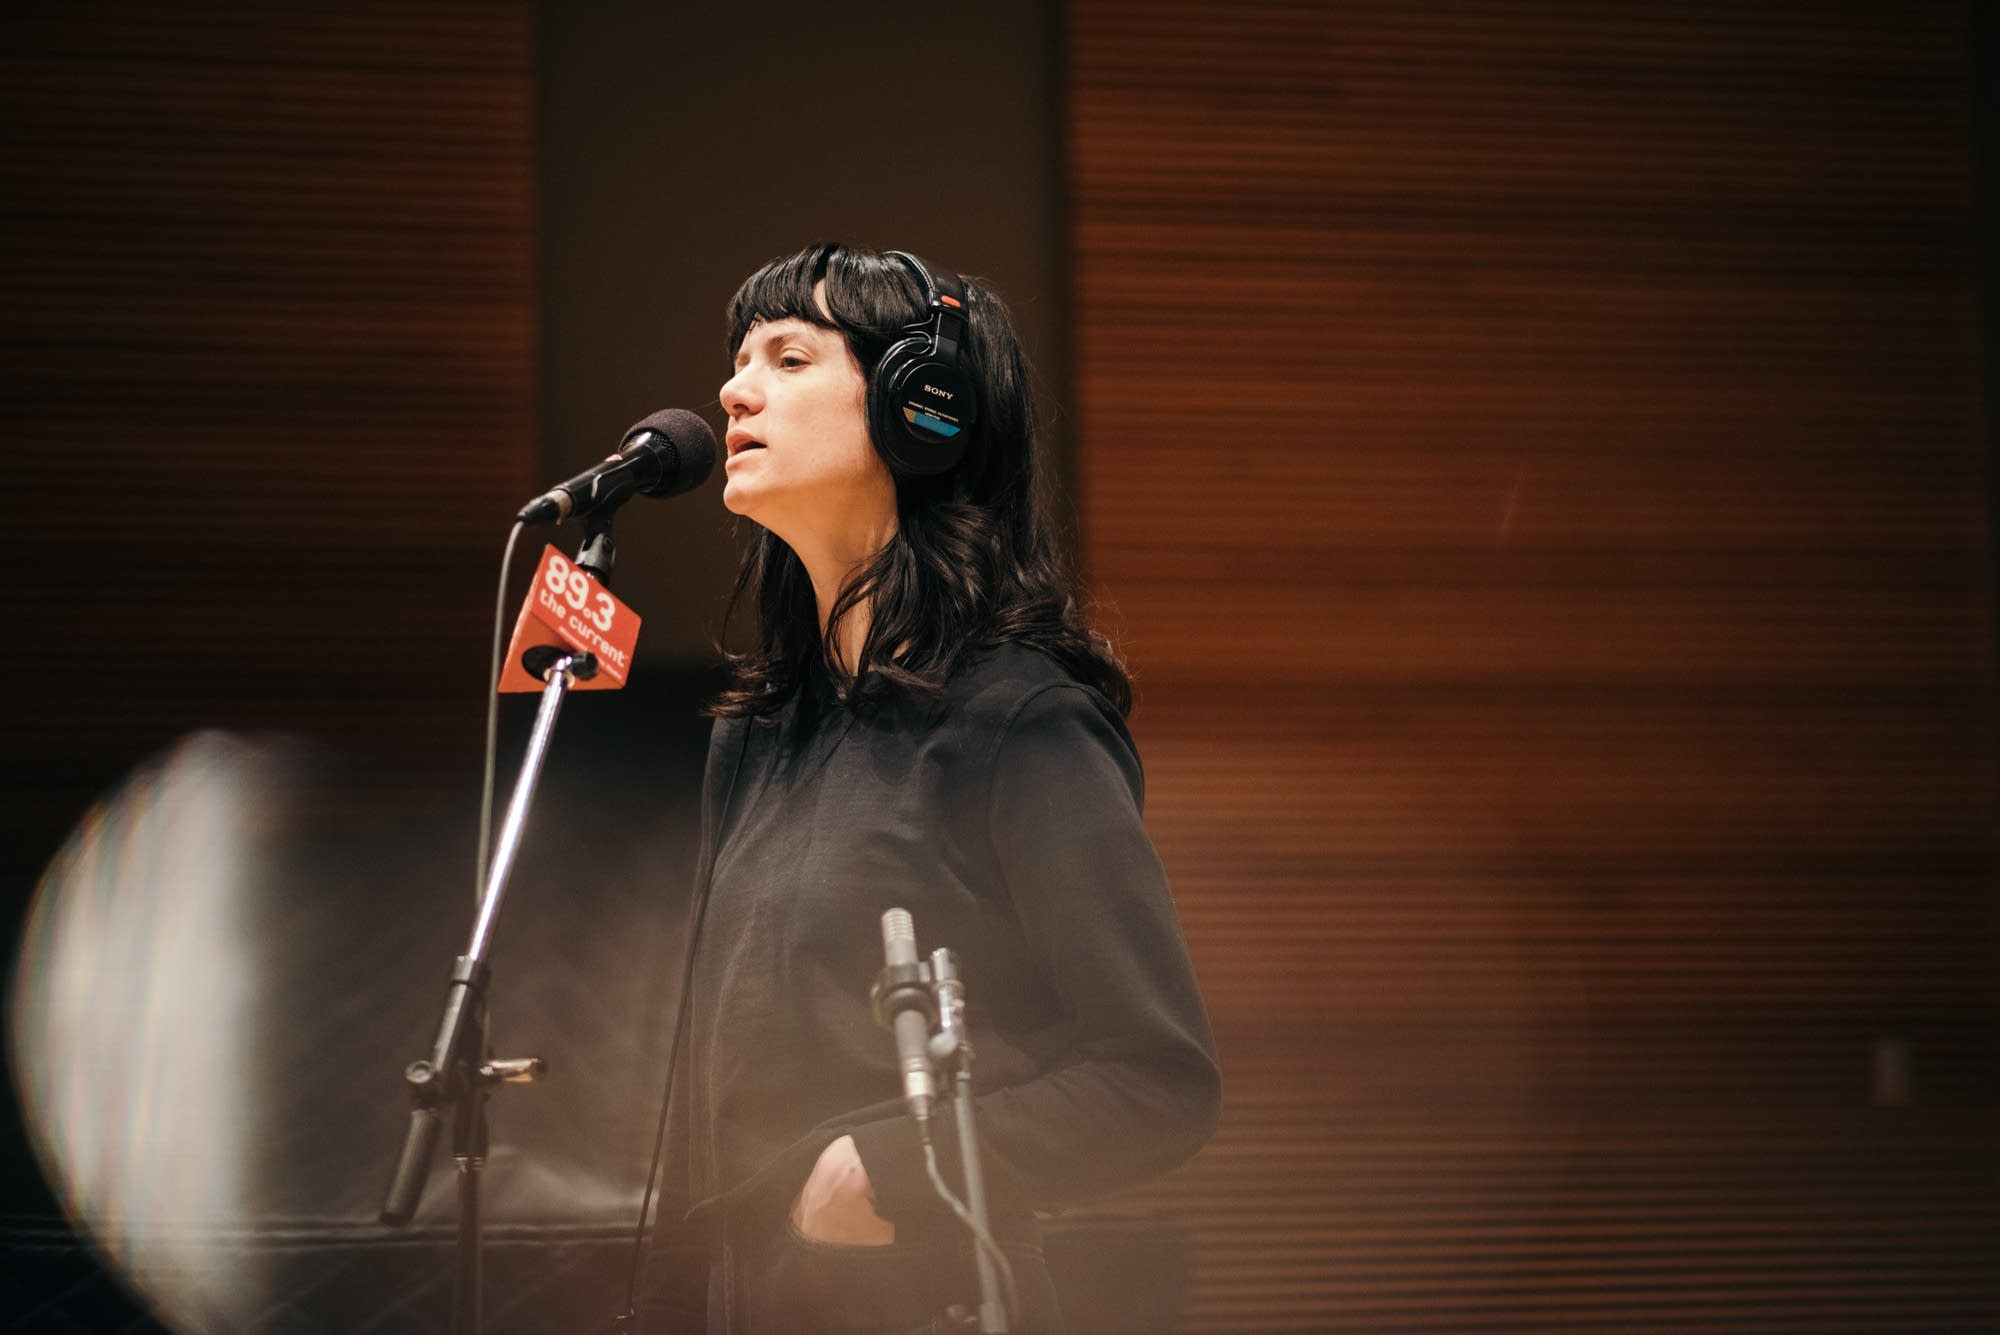 Nikki Lane performs in The Current studio